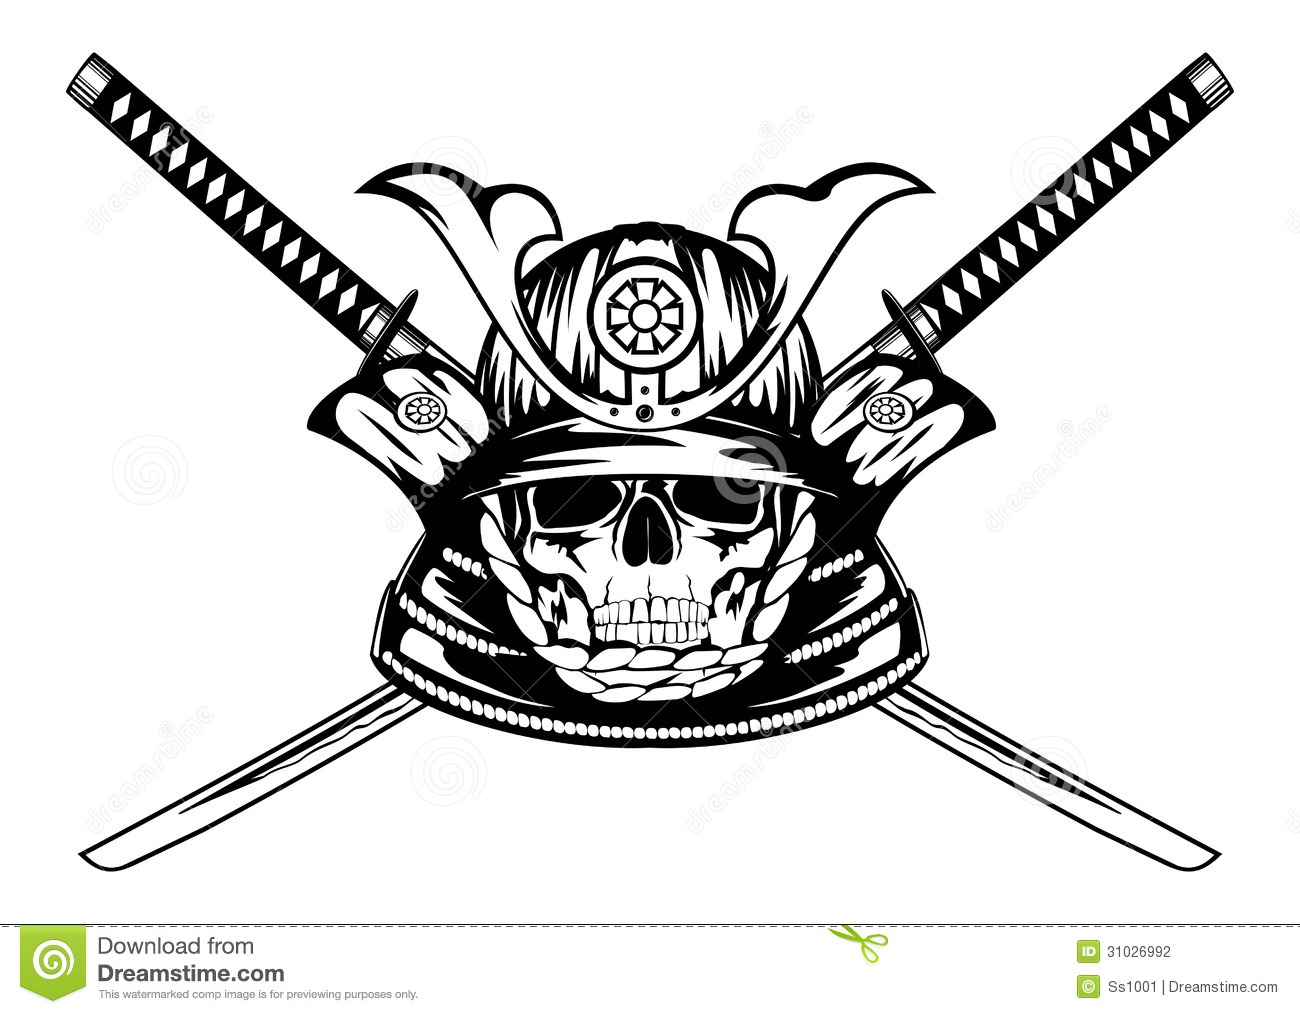 Siege Katana 559401669 as well Biker Boyz also Dibujos Para Imprimir De Sonic Y Sus Amigos IBXrkxKkX moreover Clip Art Heraldry Heraldic Lion Color 24578 as well Finn S Conflicted Face Template 342274026. on black excalibur